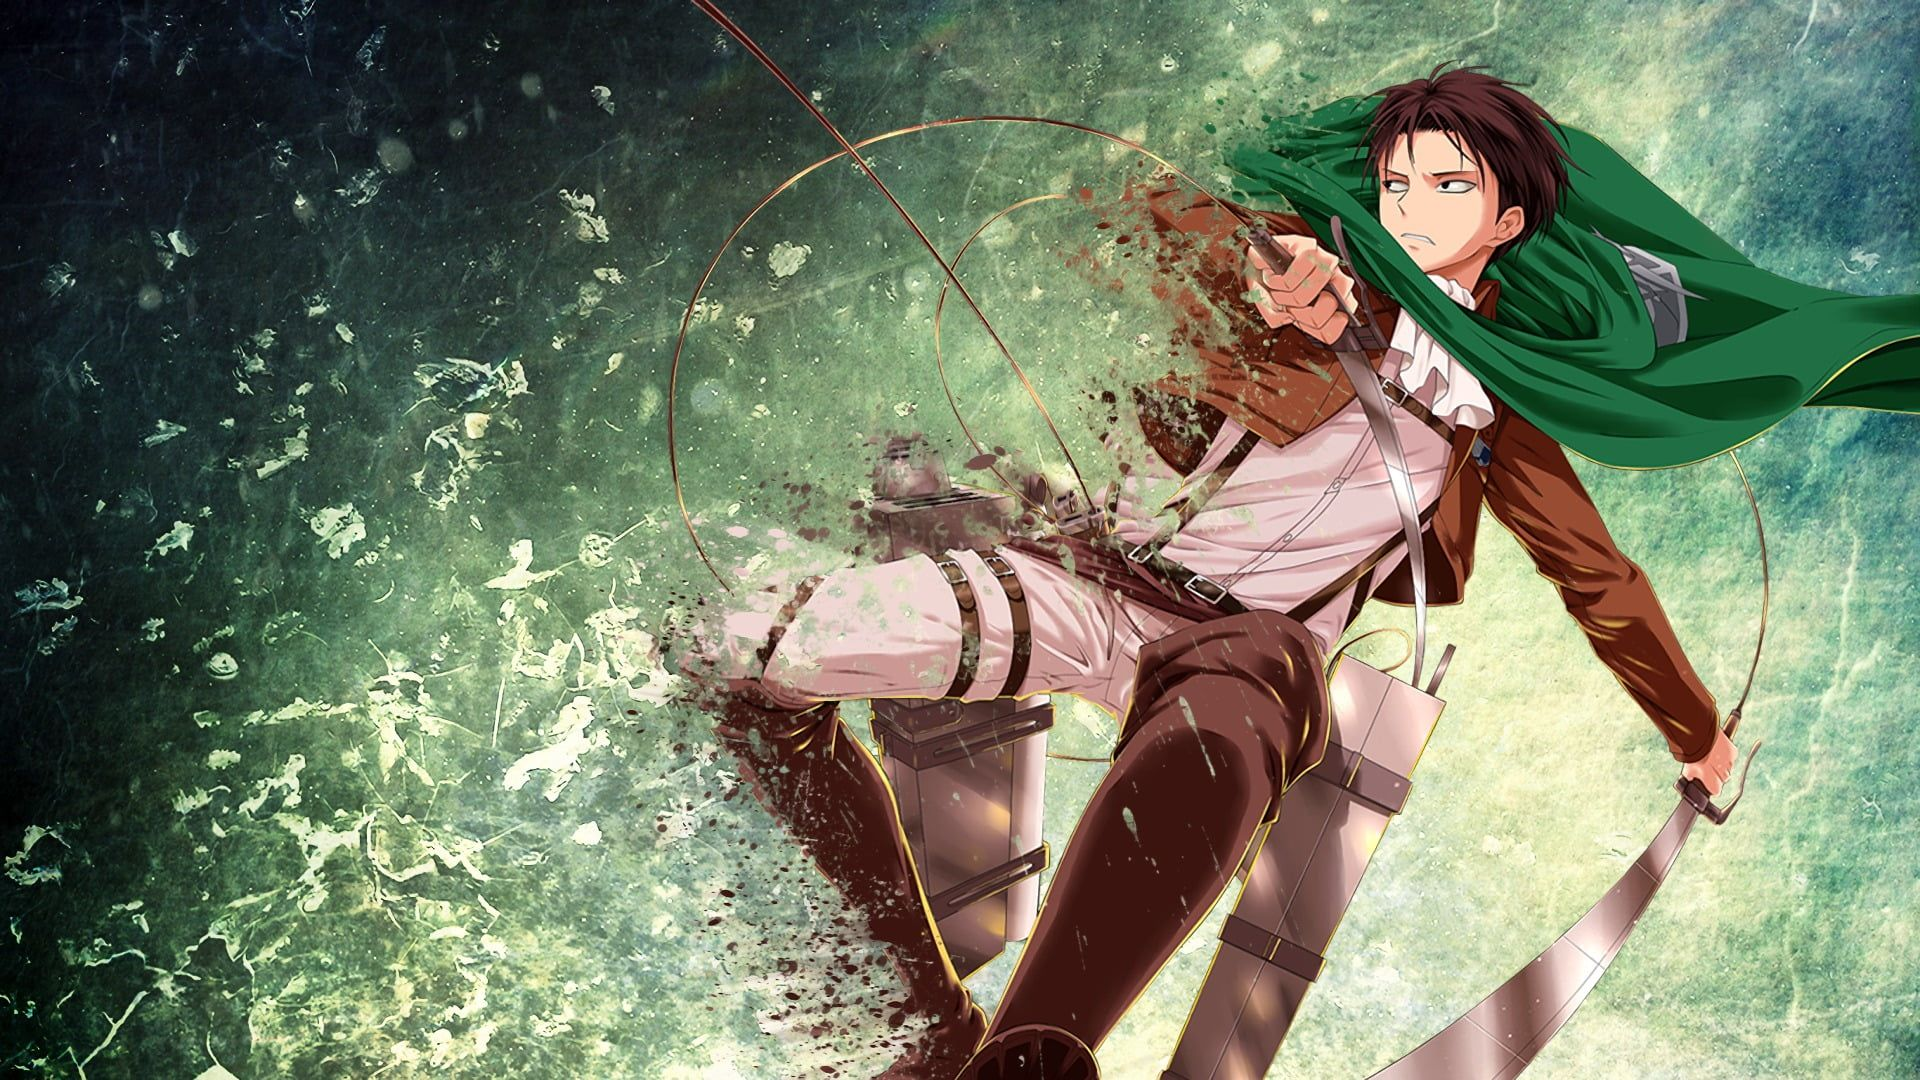 Anime Attack On Titan Levi Ackerman 1080p Wallpaper Hdwallpaper Desktop Attack On Titan Attack On Titan Levi Anime